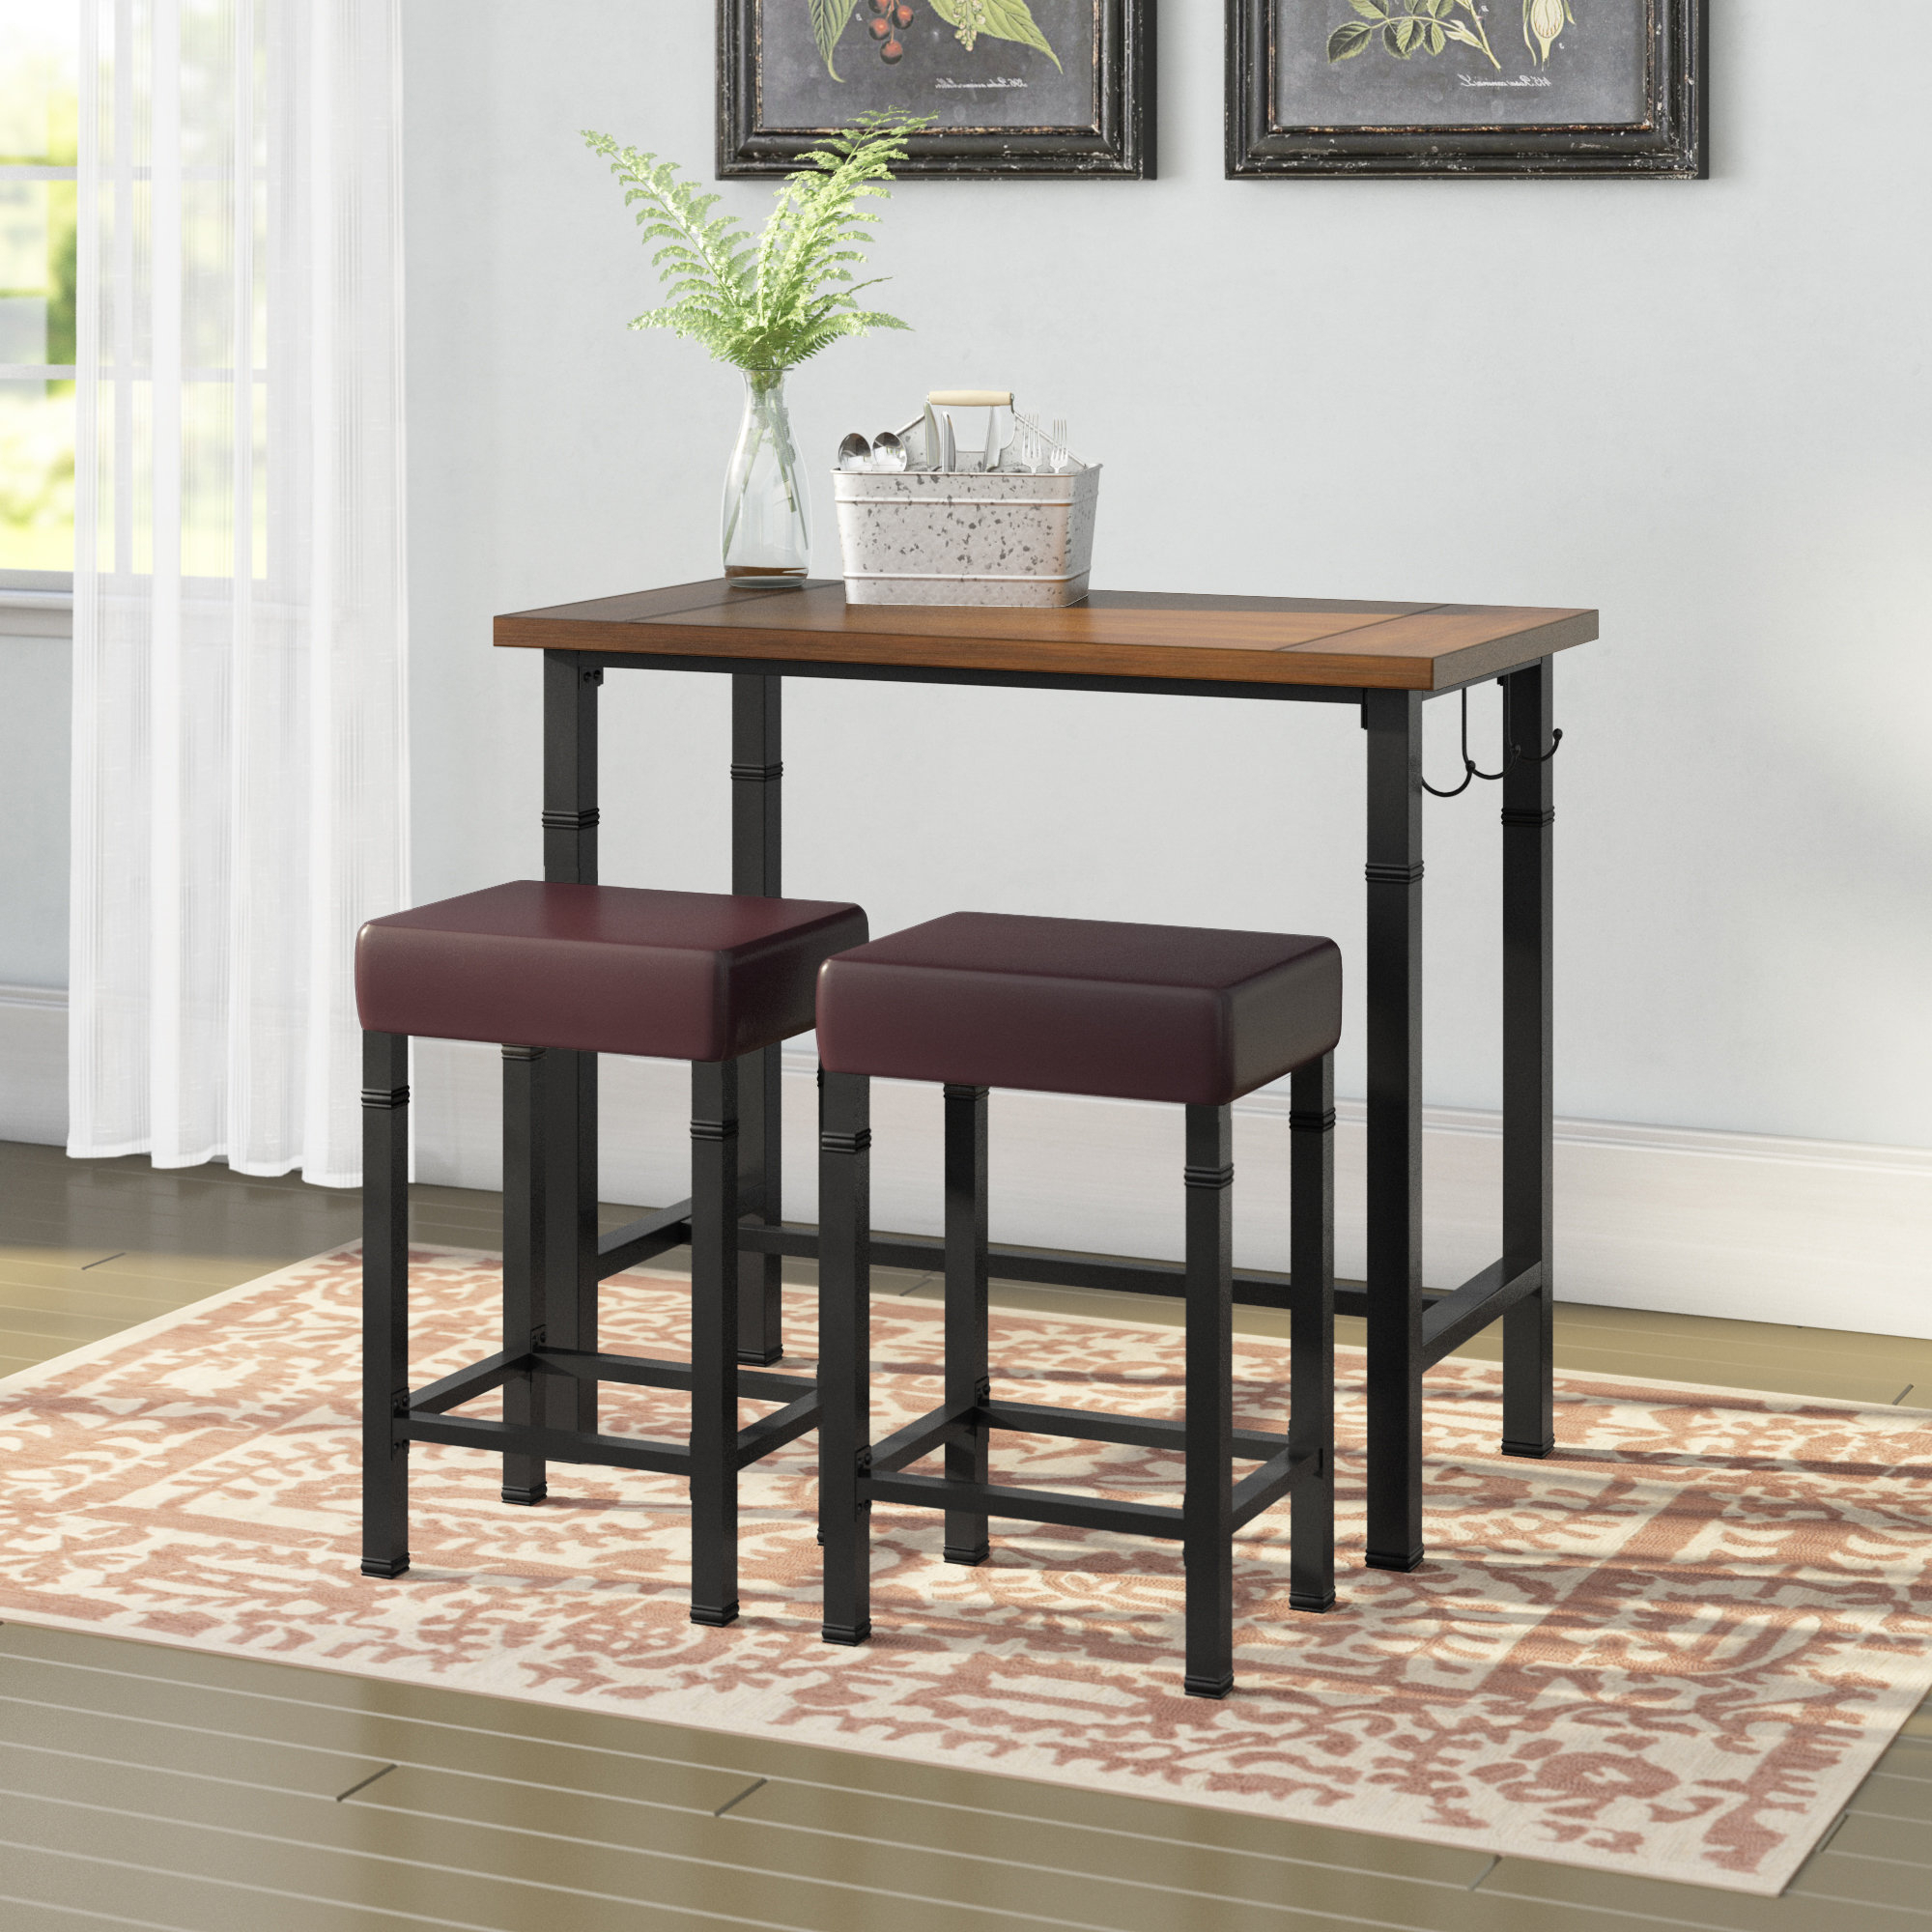 Lillard 3 Piece Breakfast Nook Dining Sets Within Most Recent Laurel Foundry Modern Farmhouse Sevigny 3 Piece Pub Table Set (View 13 of 25)